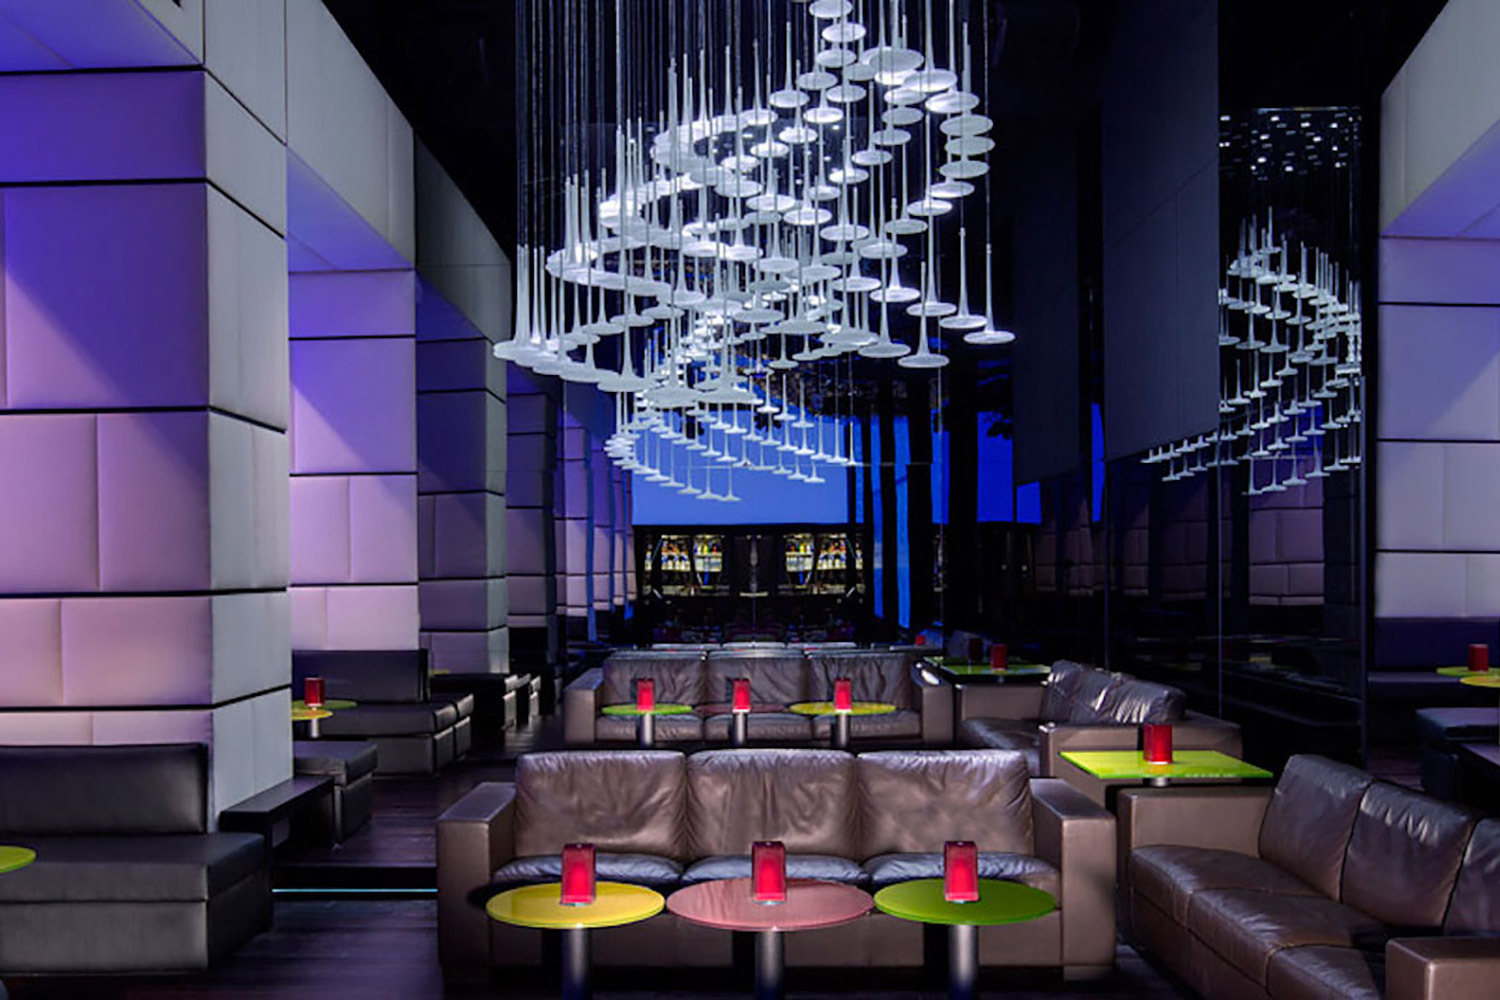 La Cigale, Doha's newest luxury hotel. WSDG performed a full acoustic makeover. Madison Piano Bar